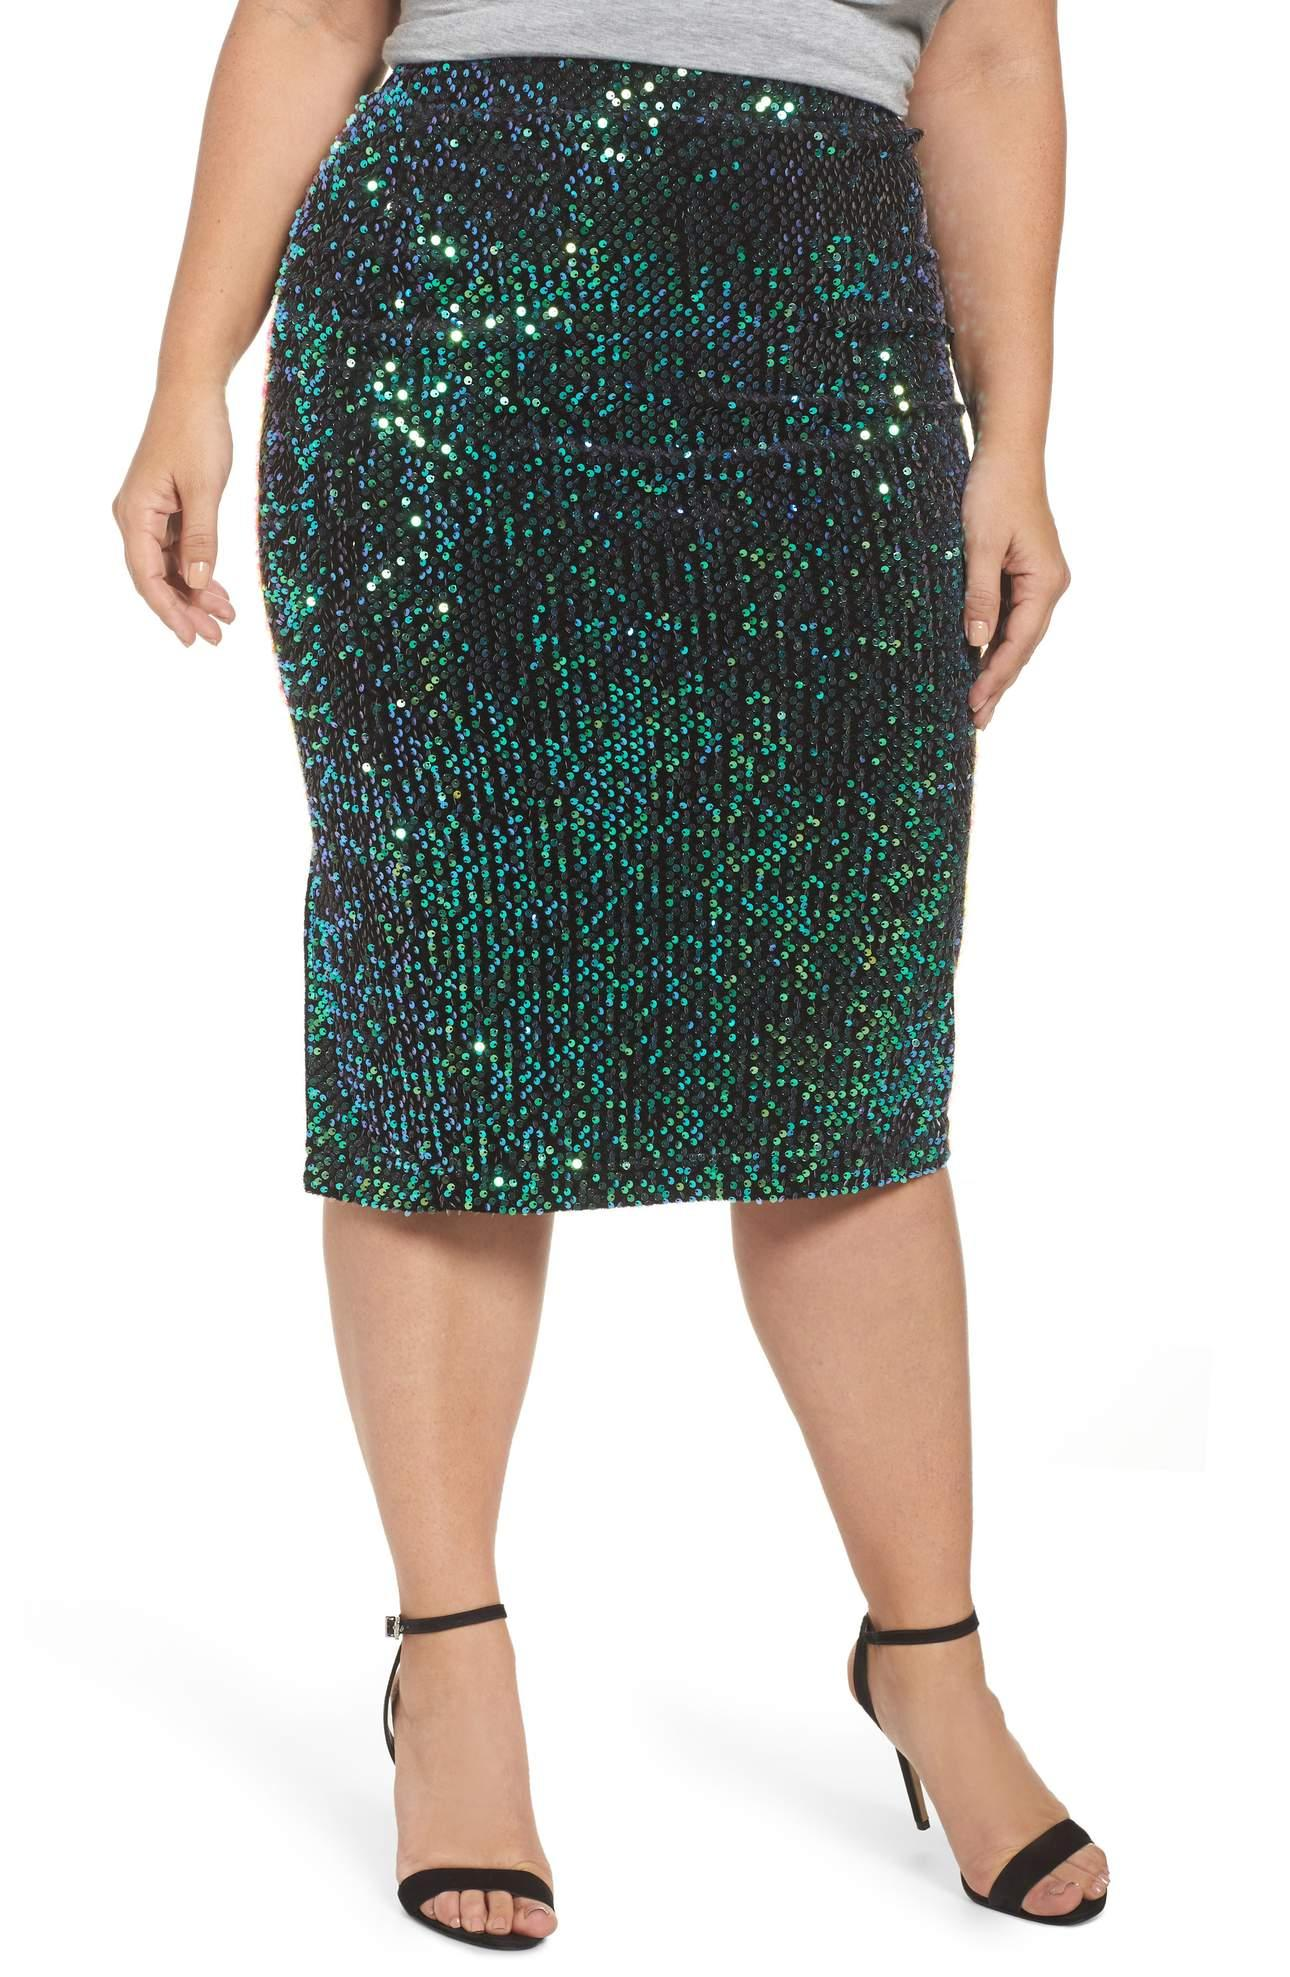 <p>Sequin Pencil Skirt - $74. Opulent shine and texture go around the clock via this curve-skimming skirt blanketed with sequins for a rich, jewel-like shimmer. This color is so festive and perfect for bringing in the New Year! (Image: Nordstrom){&amp;nbsp;}</p><p></p>